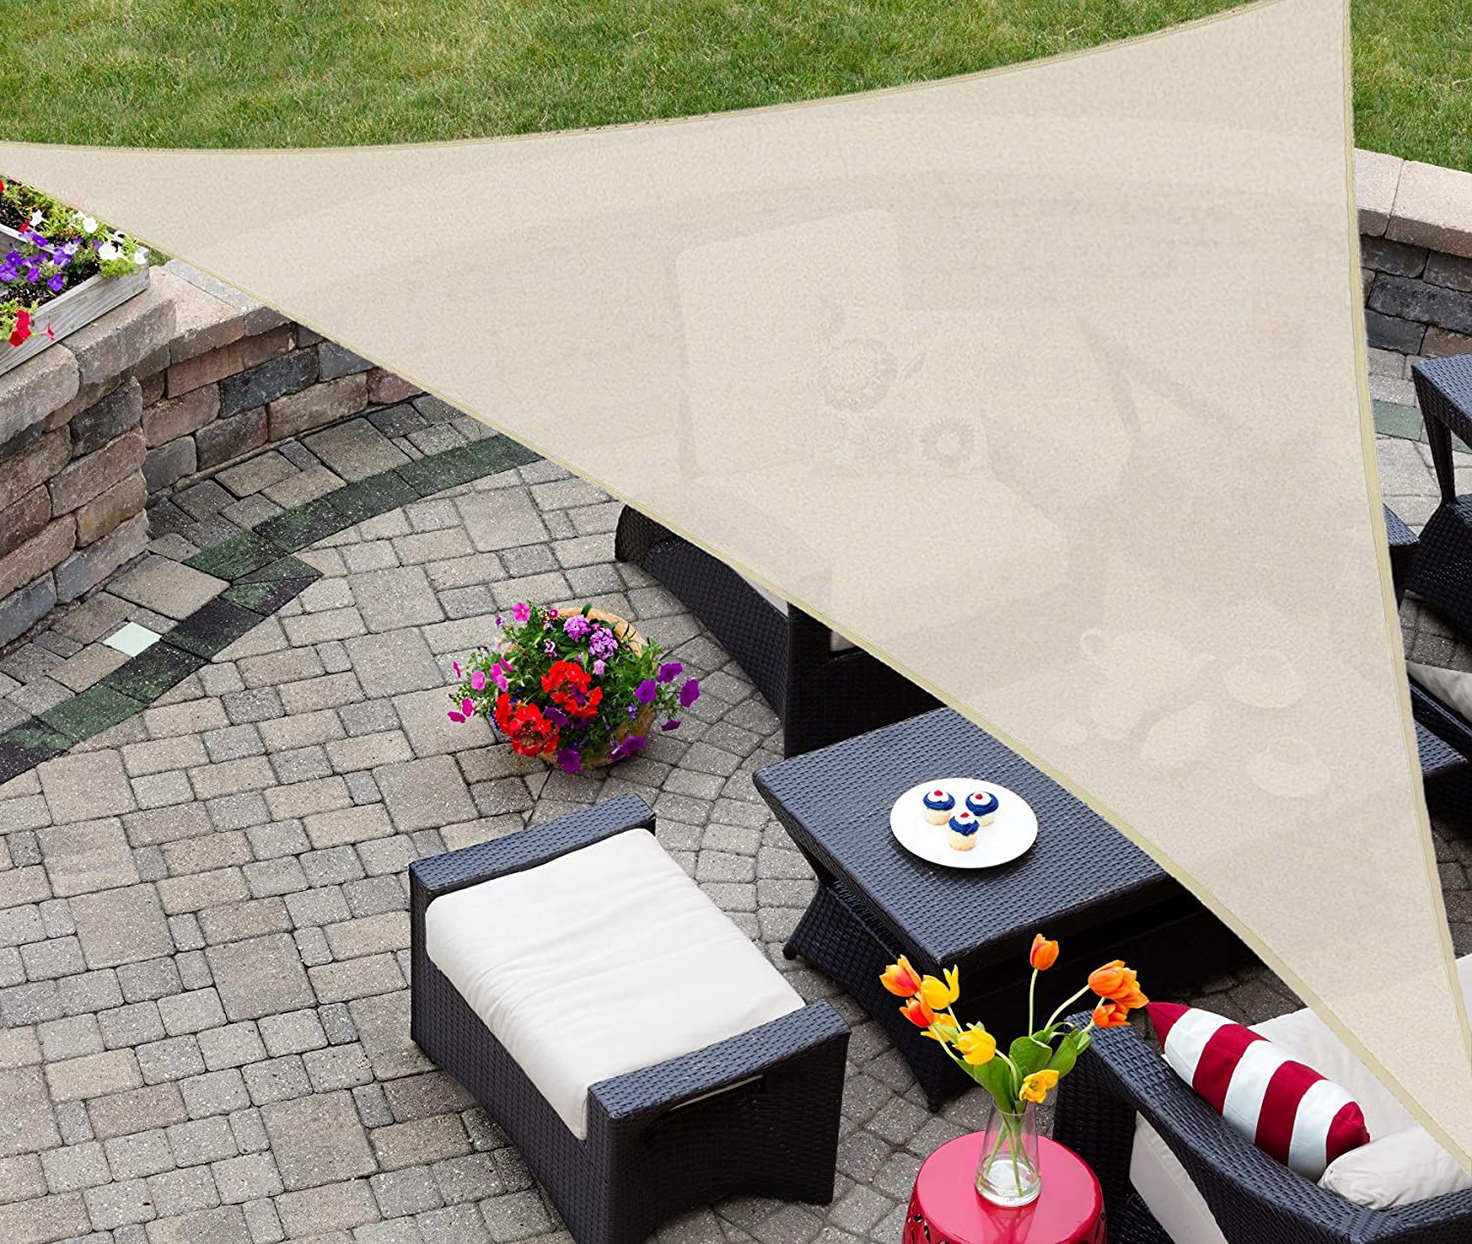 tan triangle shaped sun shade from AsterOutdoor over a patio set in a yard